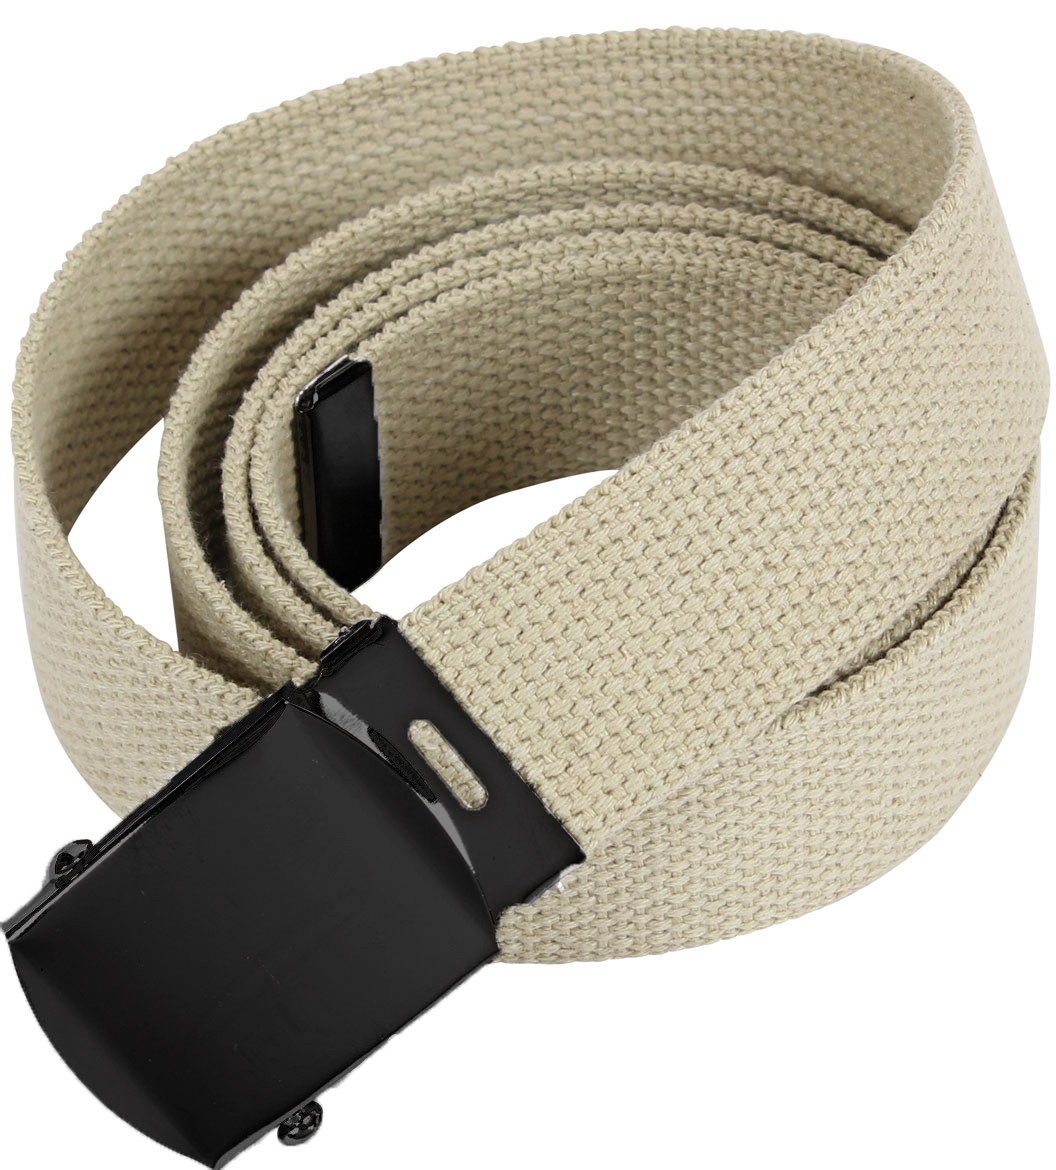 More Views. Khaki Military Web Belt with Black Buckle 2ff055fc60d